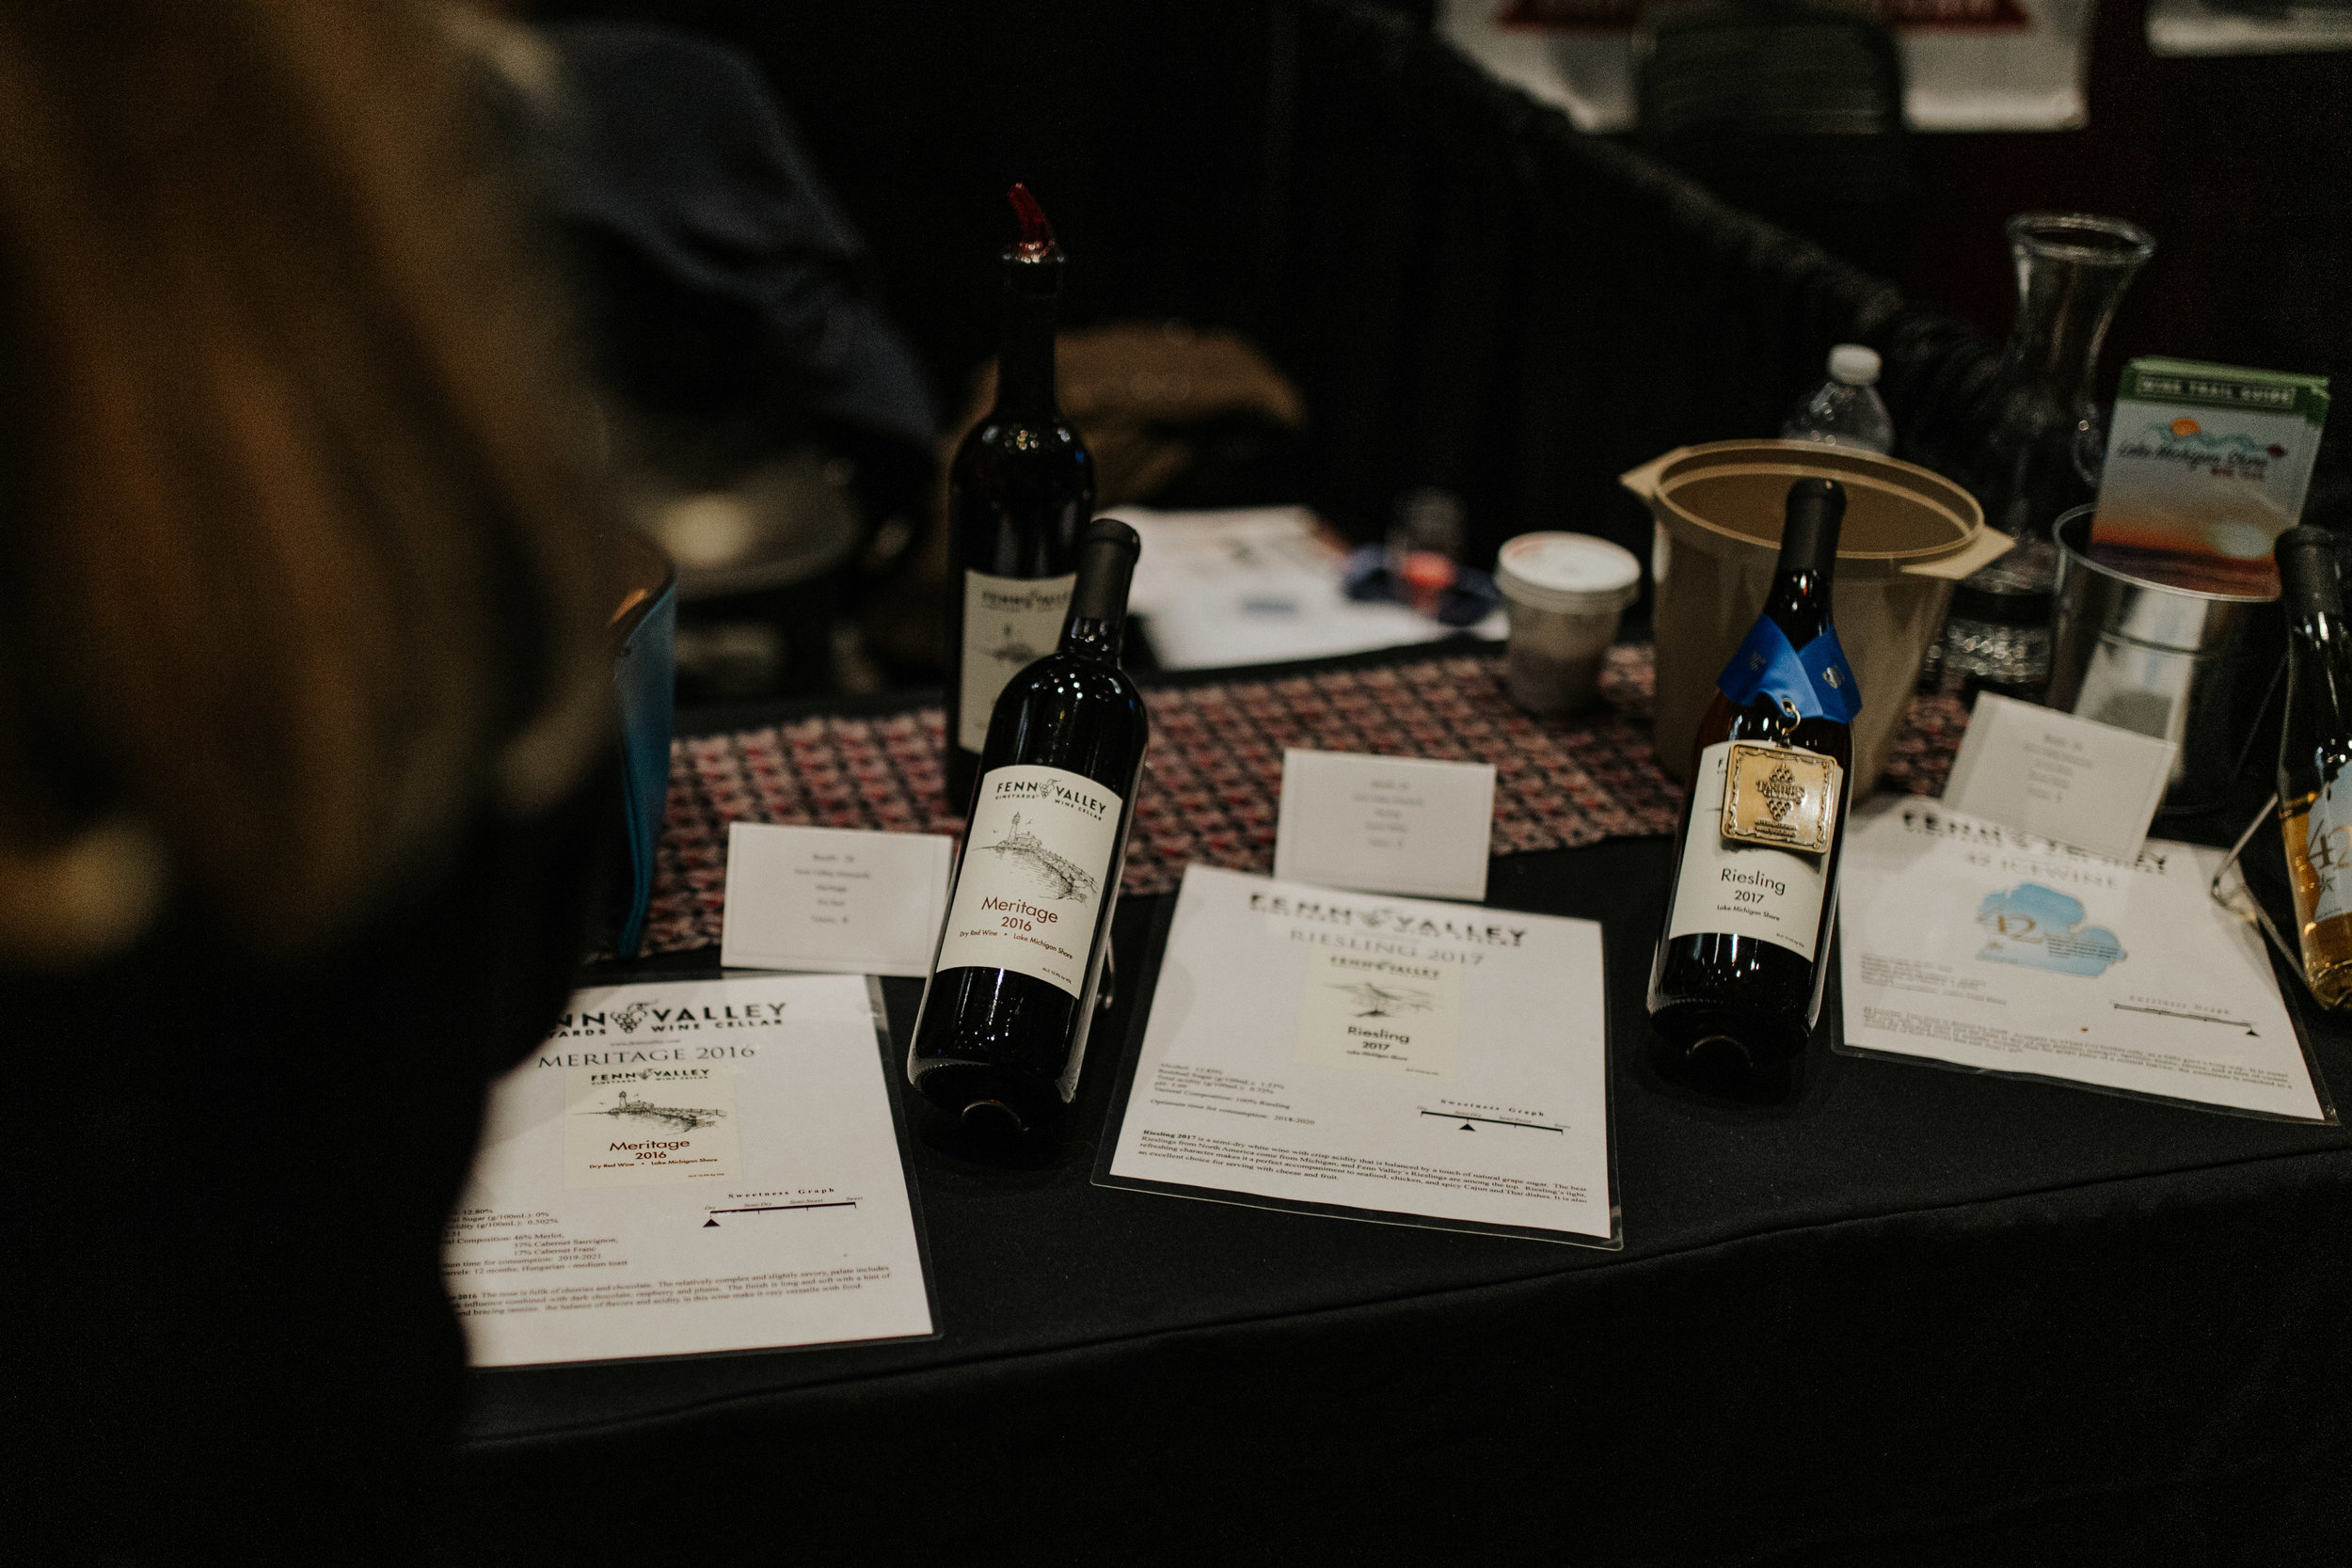 Grand Rapids International Wine, Beer, and Food Festival